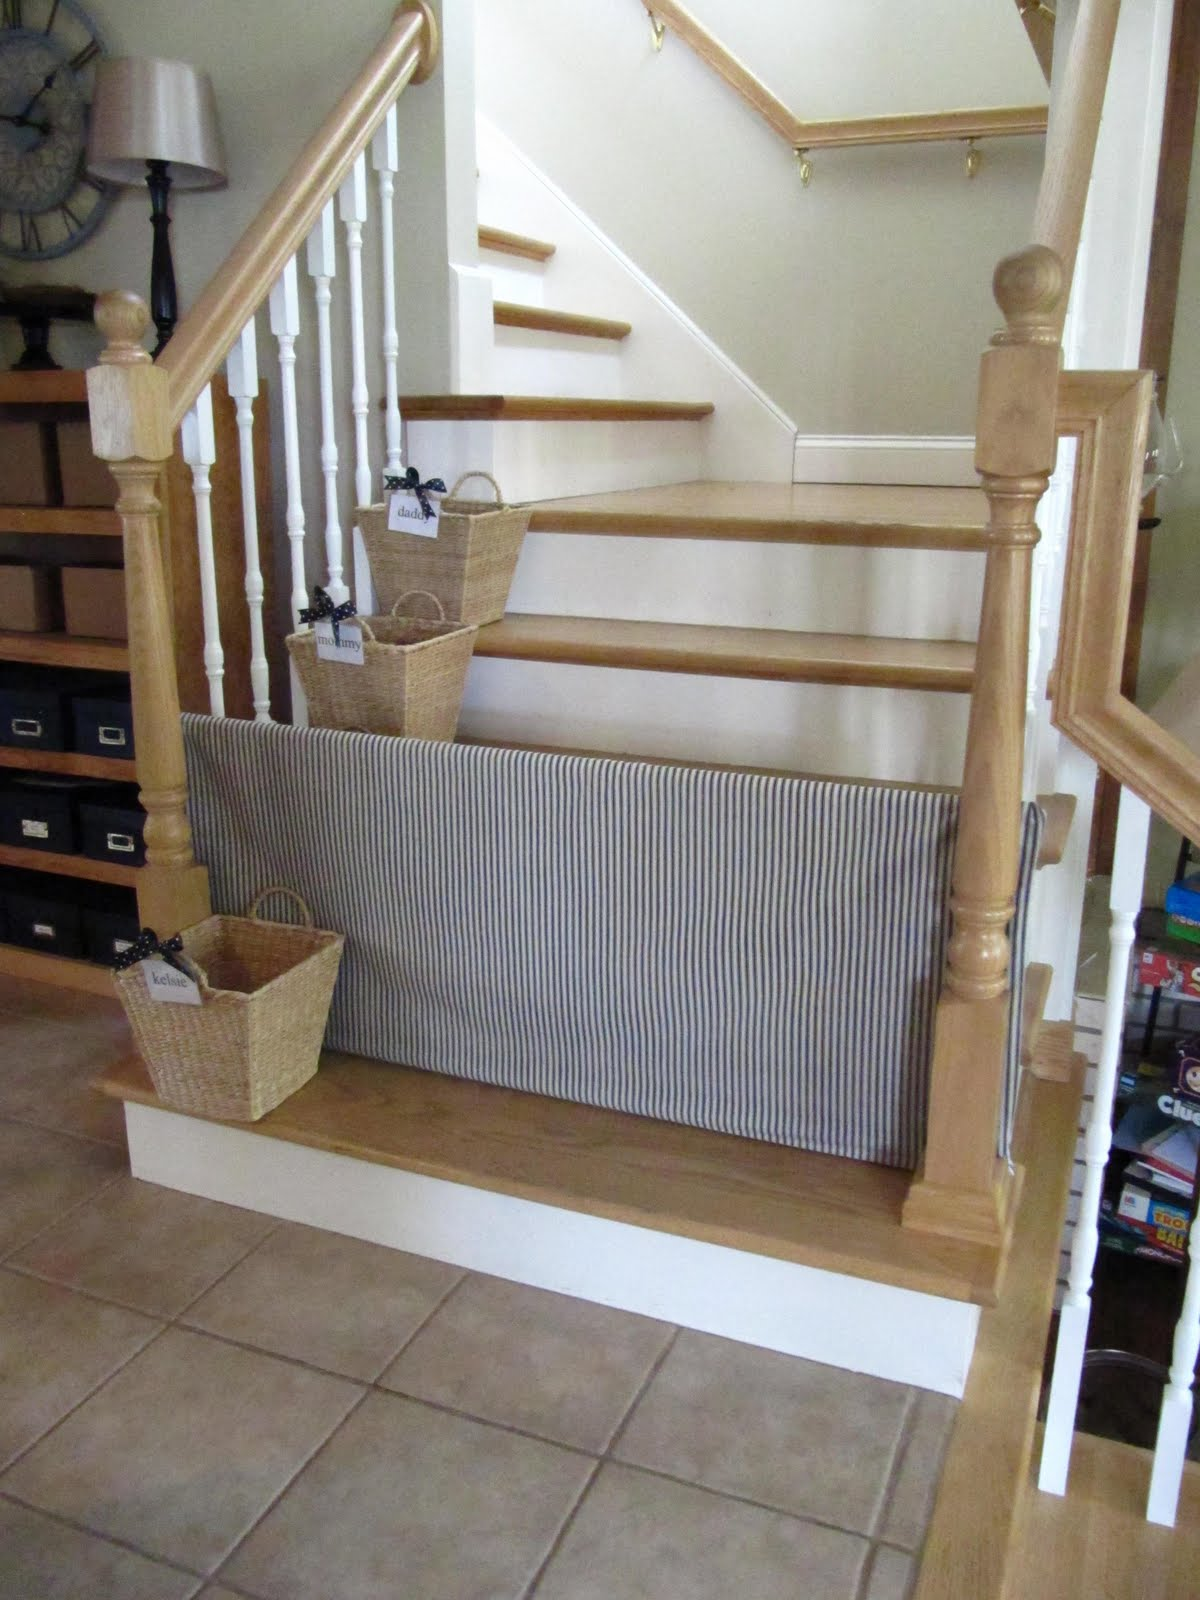 Charmant That Gate Just Rests Between The Spindles Of The Stairs. You Can Slide It  Back And Forth To Get Through. Tutorial: Sew Many Ways